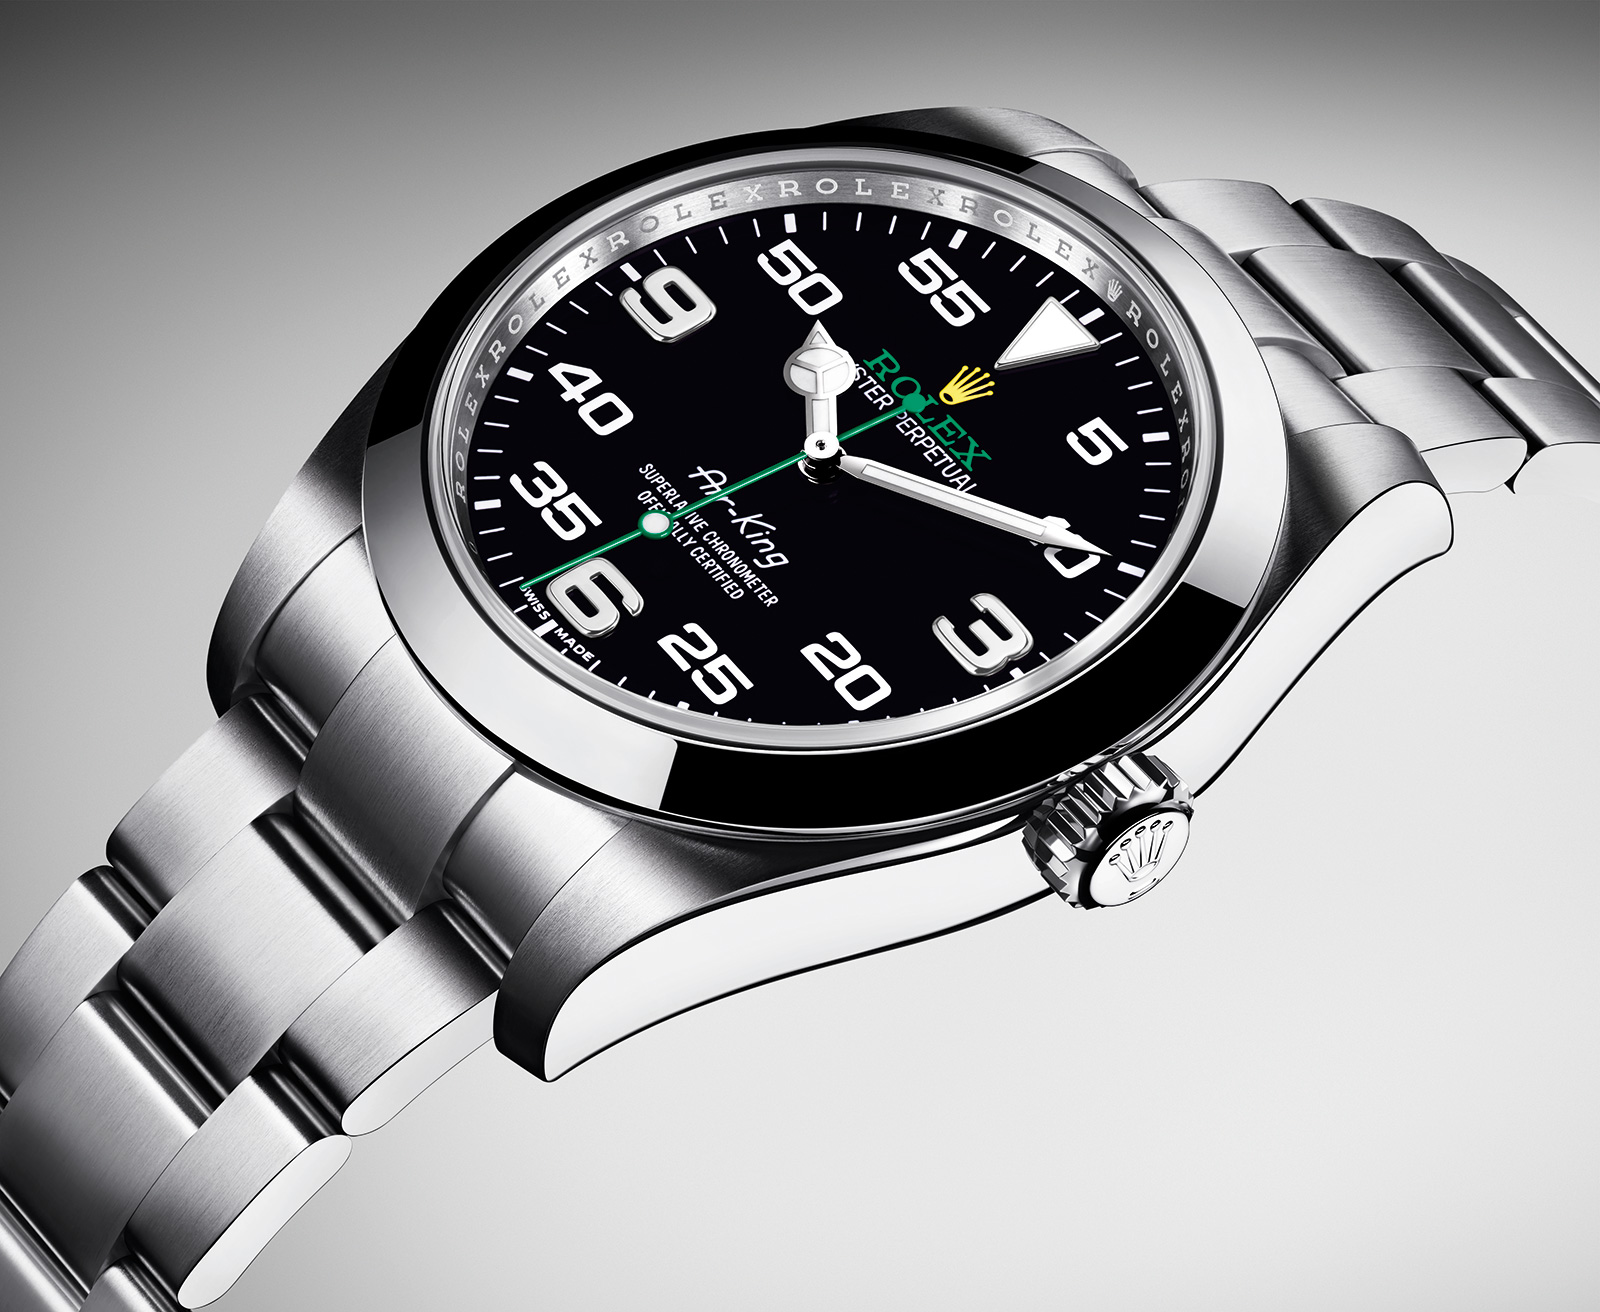 rolex brings back the air king with a funky new dial sjx watches